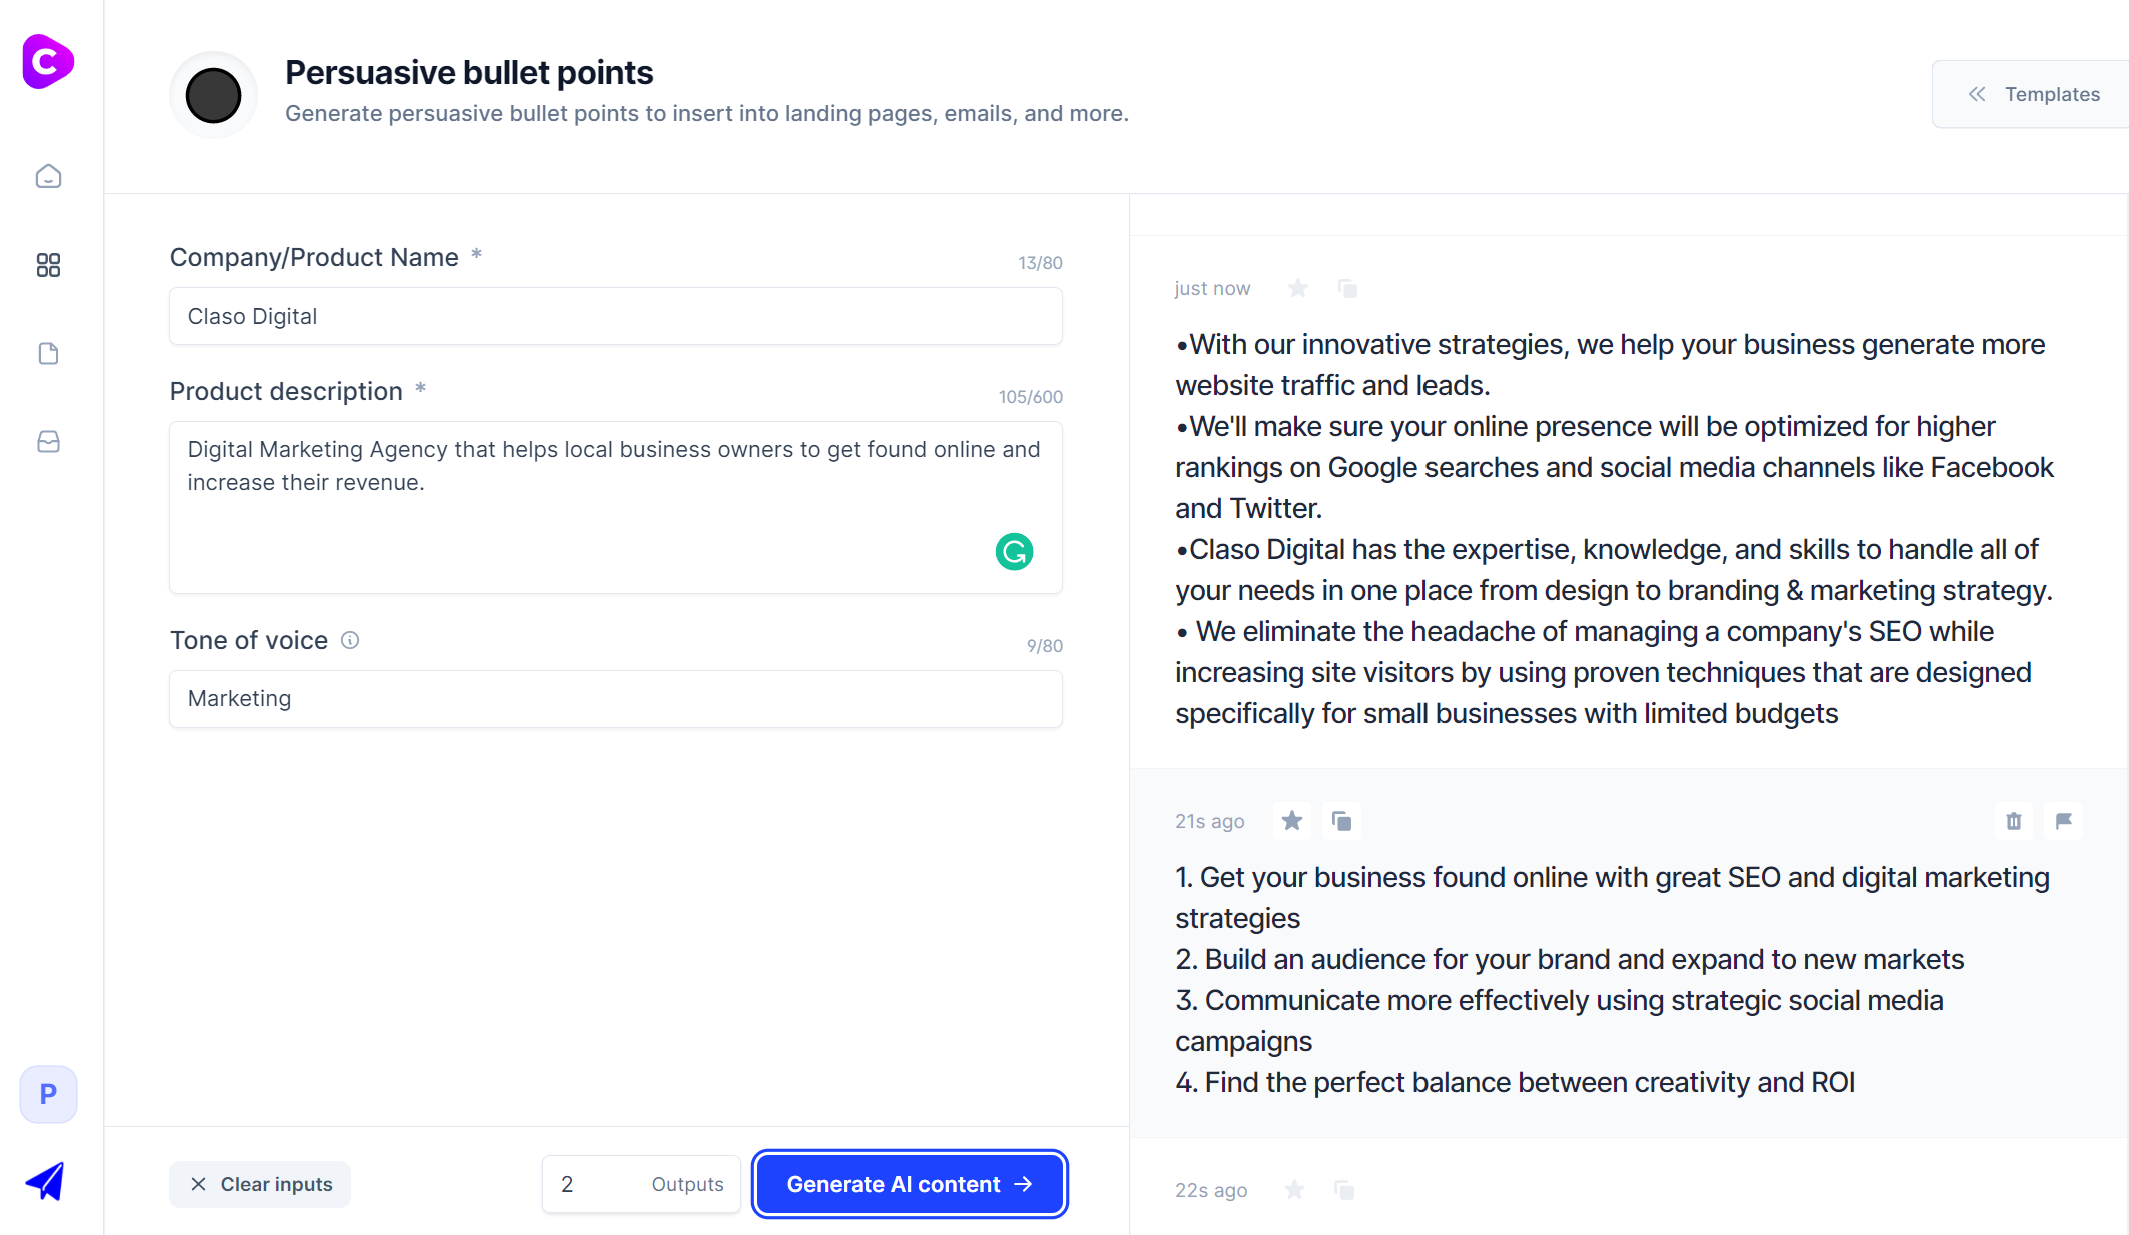 Jarvis.ai - Persuasive Bullet Points Template